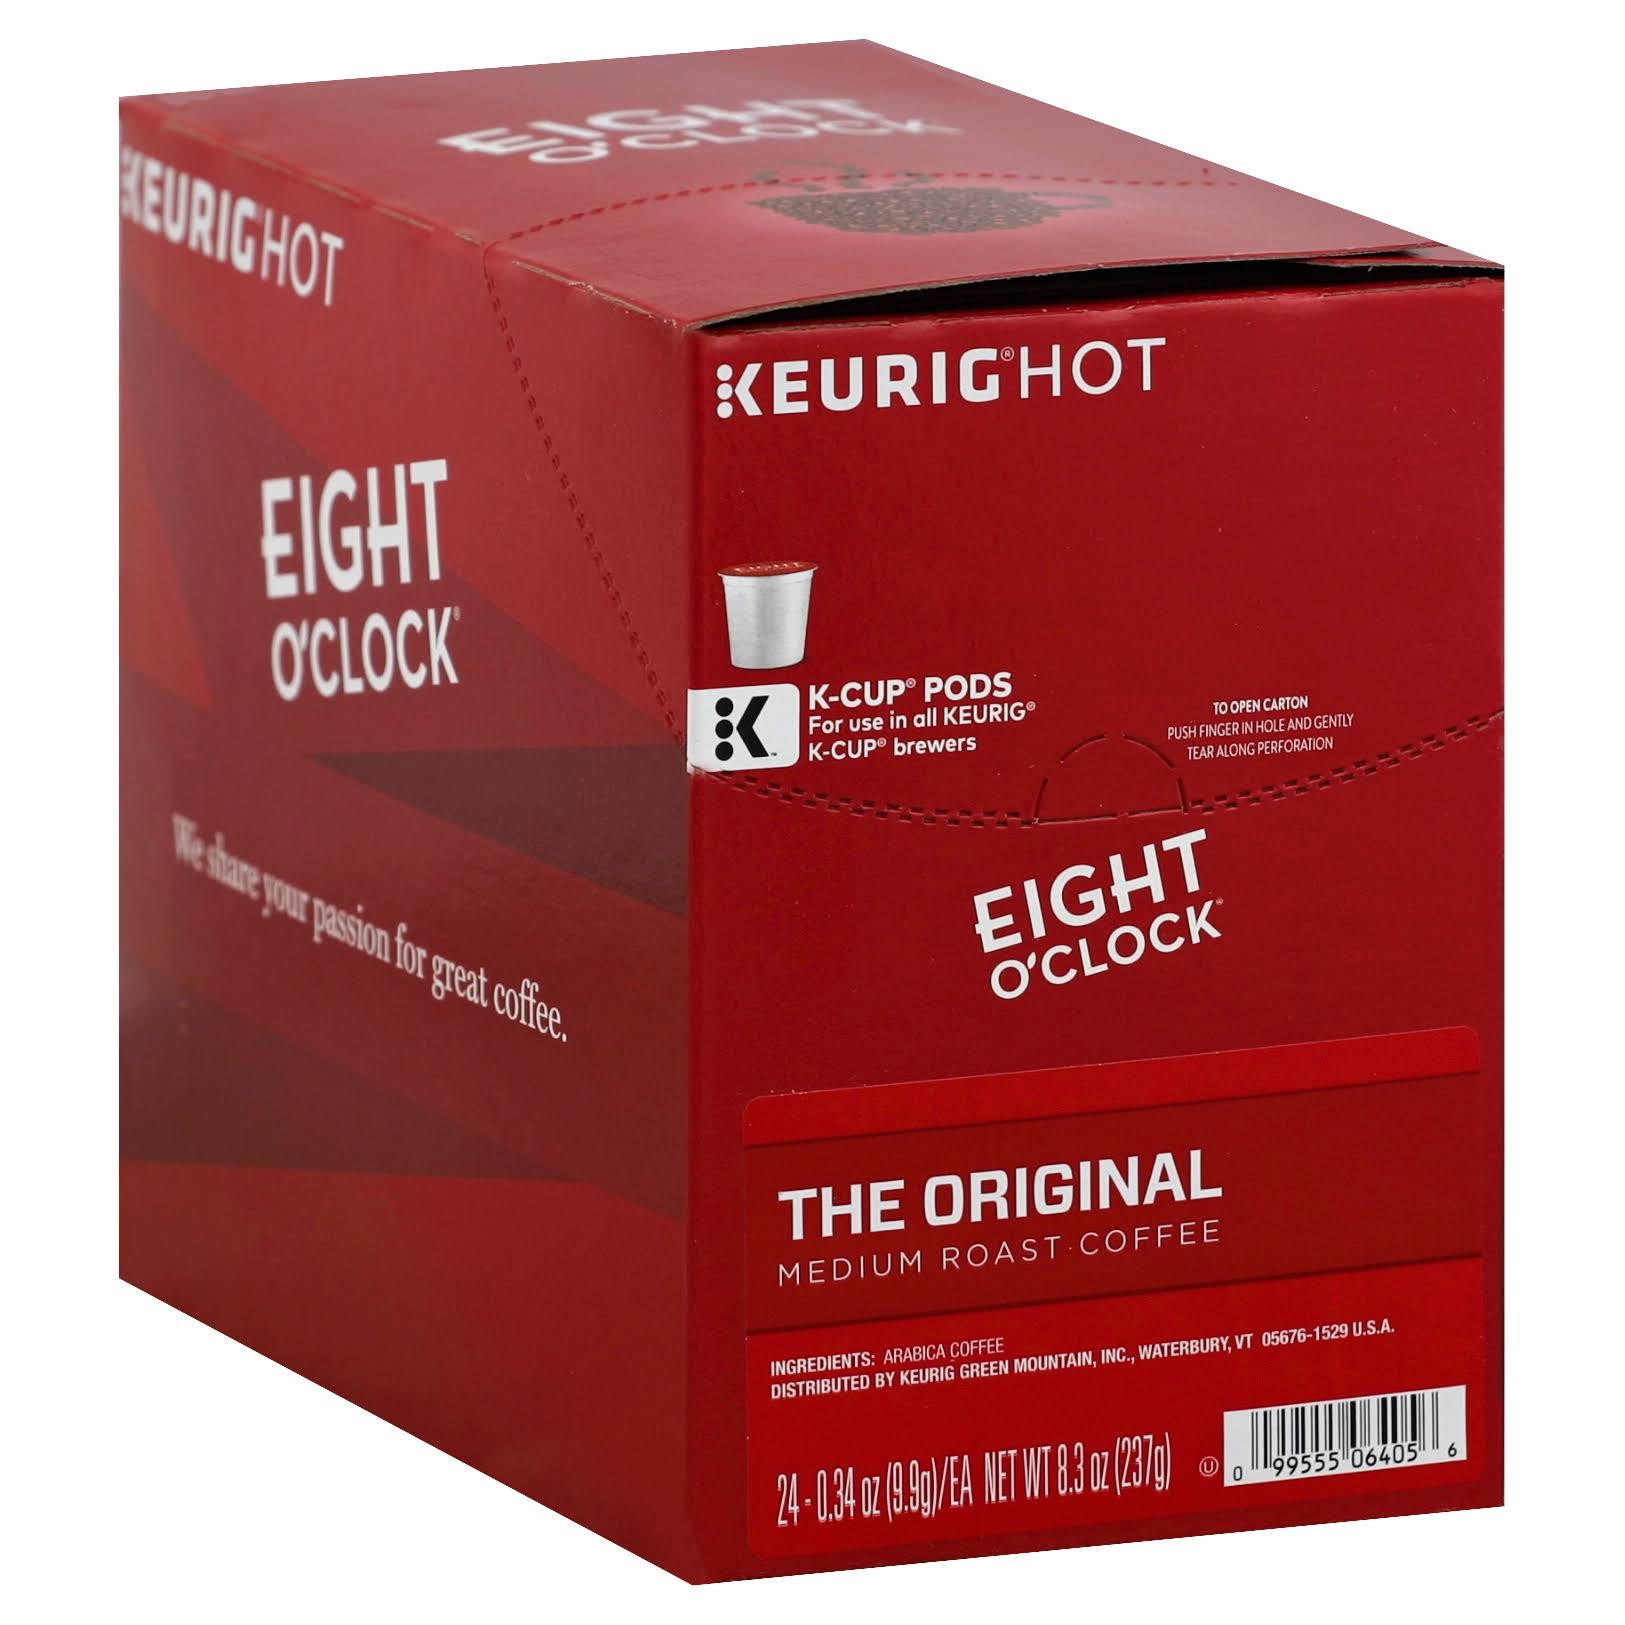 Eight O'clock The Original Coffee - Medium Roast, K Cup Pods, 0.34oz, 24ct